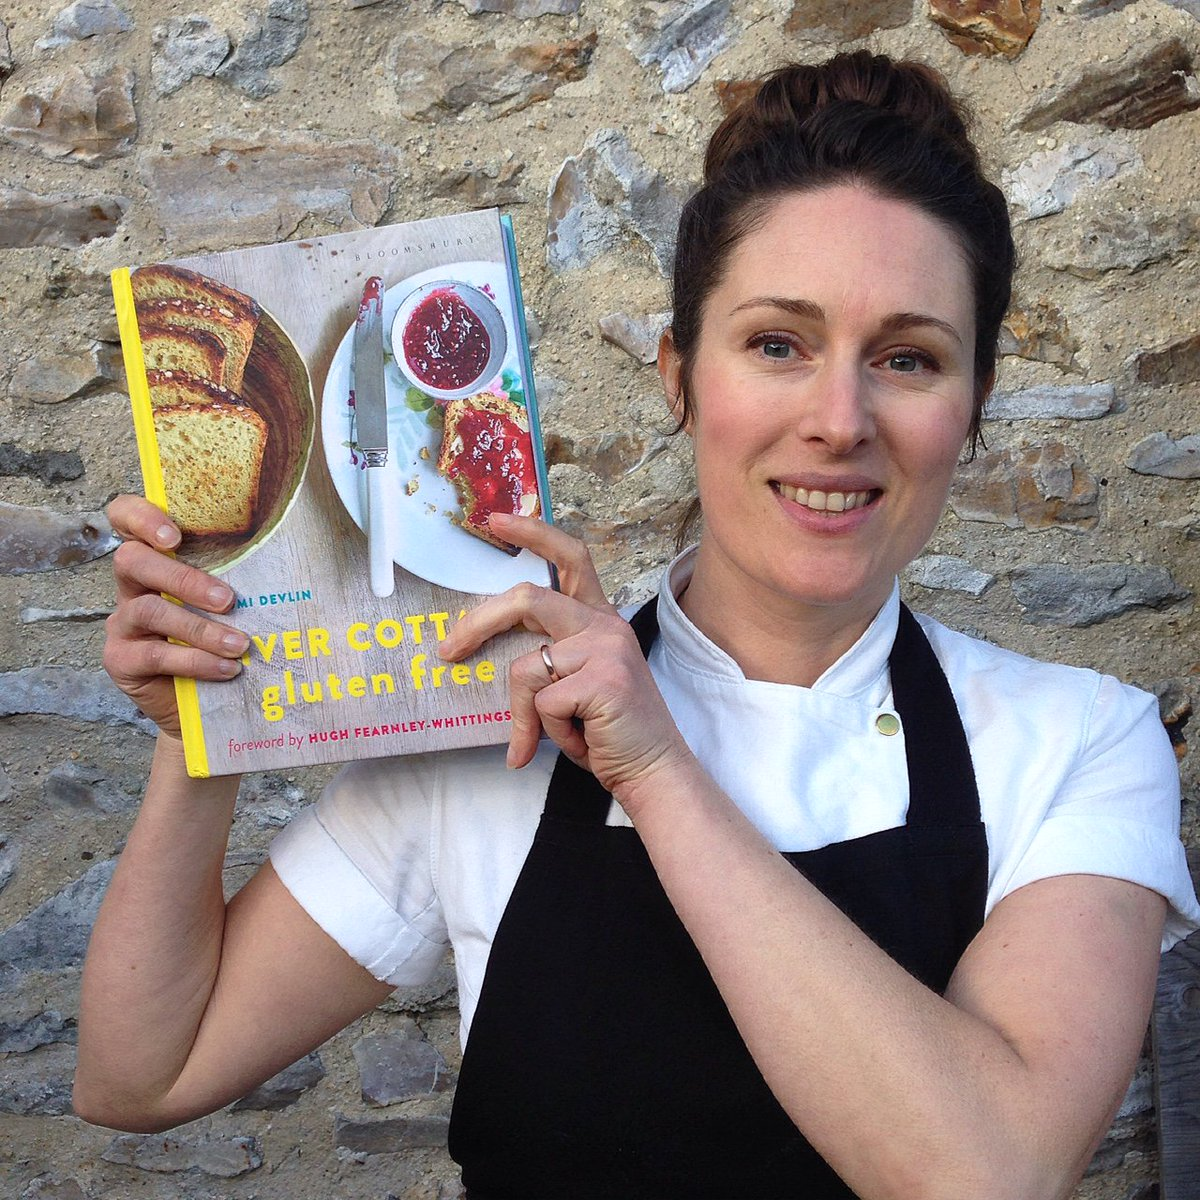 RT @rivercottage: Heard about @naomidevlin's new #GlutenFree book? It's packed full of 120 inspiring recipes! https://t.co/UXGLsp7NEY https…